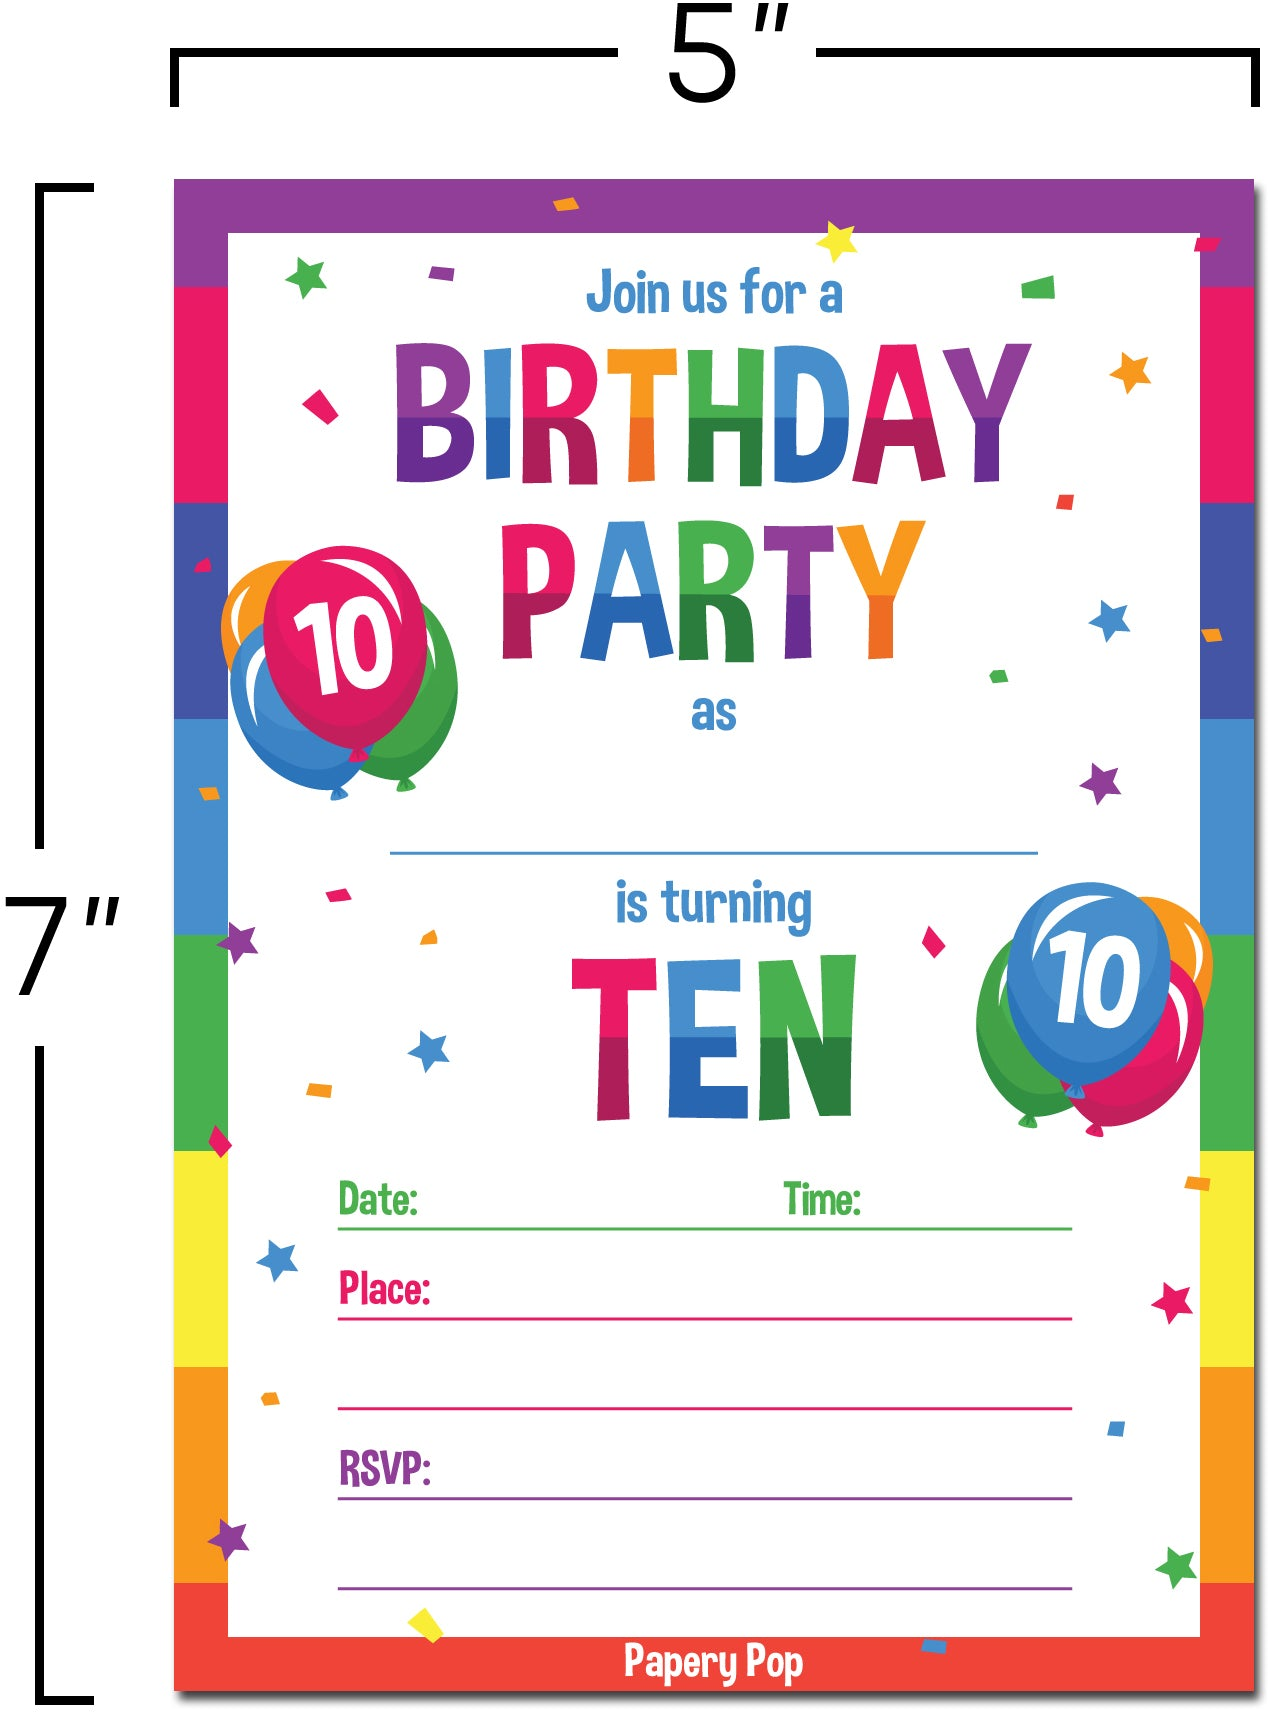 10th birthday party invitations with envelopes 15 count 10